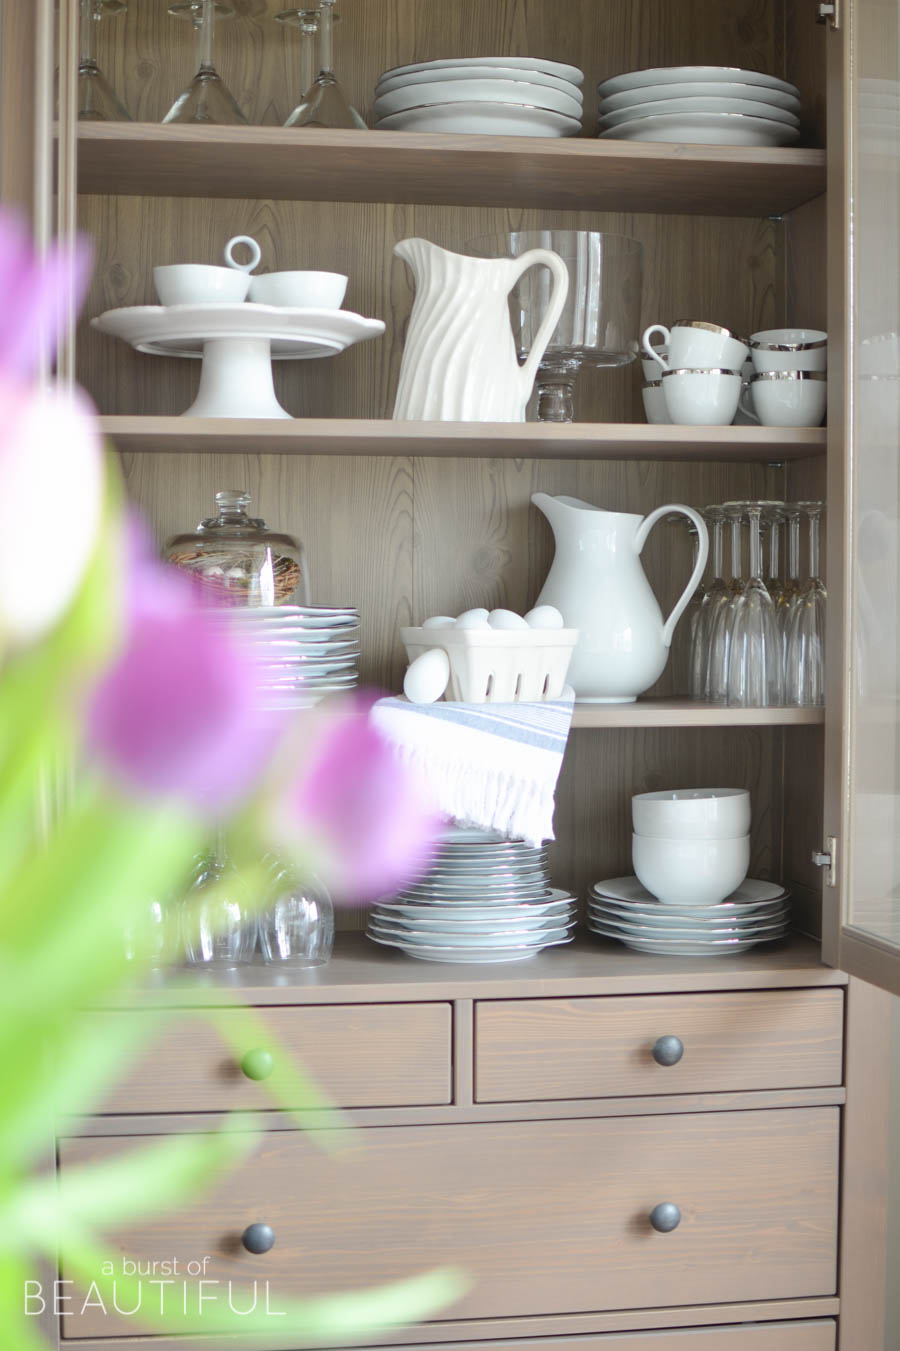 Spring flowers, like potted hydrangeas and daffodils and simple arrangements of tulips, are a pretty and inexpensive way to welcome spring into your home. Tour this bright and cheerful modern farmhouse, along with 16 other beautiful blogger homes in this stunning spring home tour | A Burst of Beautiful